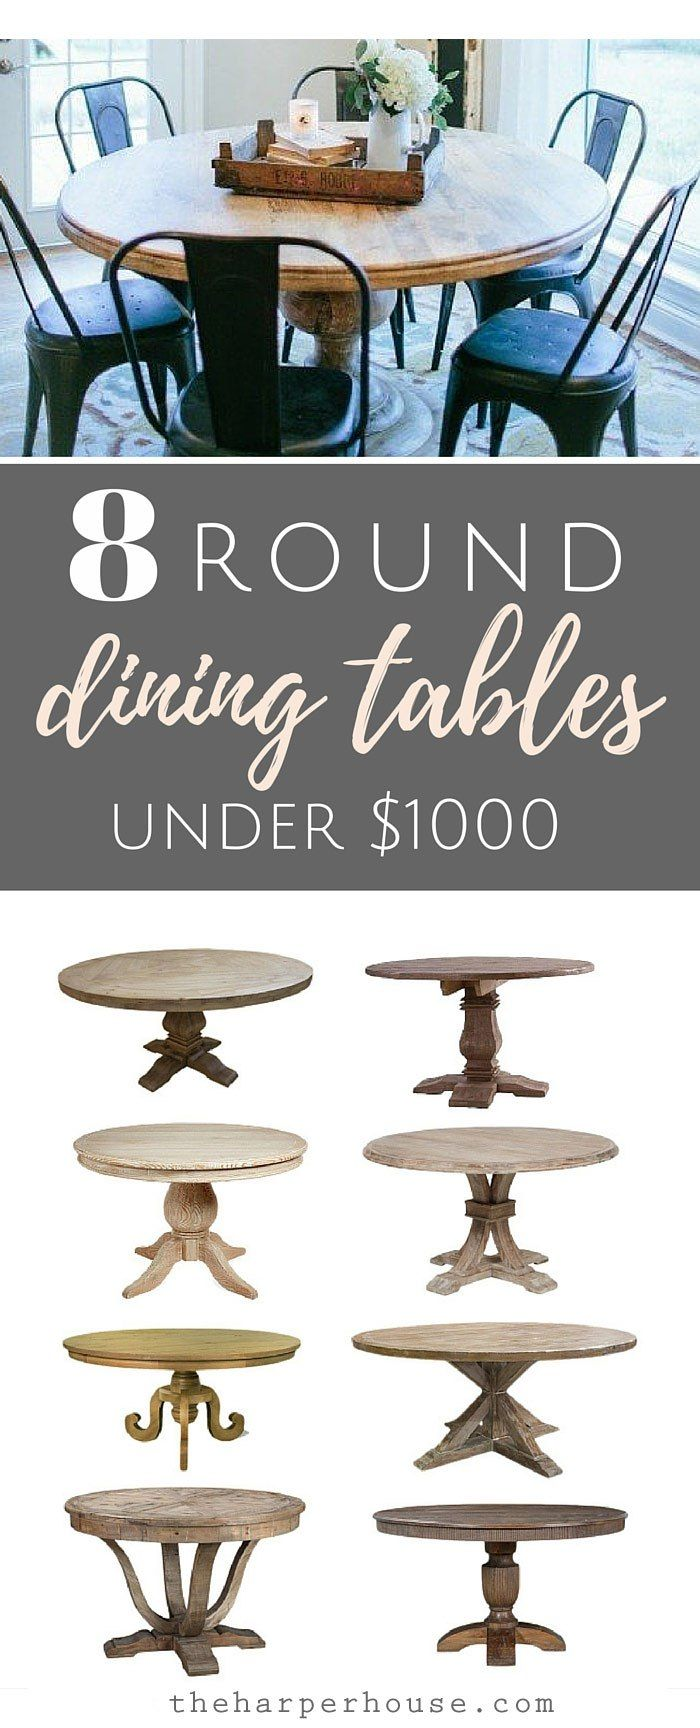 Ro round dining room sets for sale - Fixer Upper Round Dining Tables And Where To Find Affordable Options For Under 1000 Theharperhouse